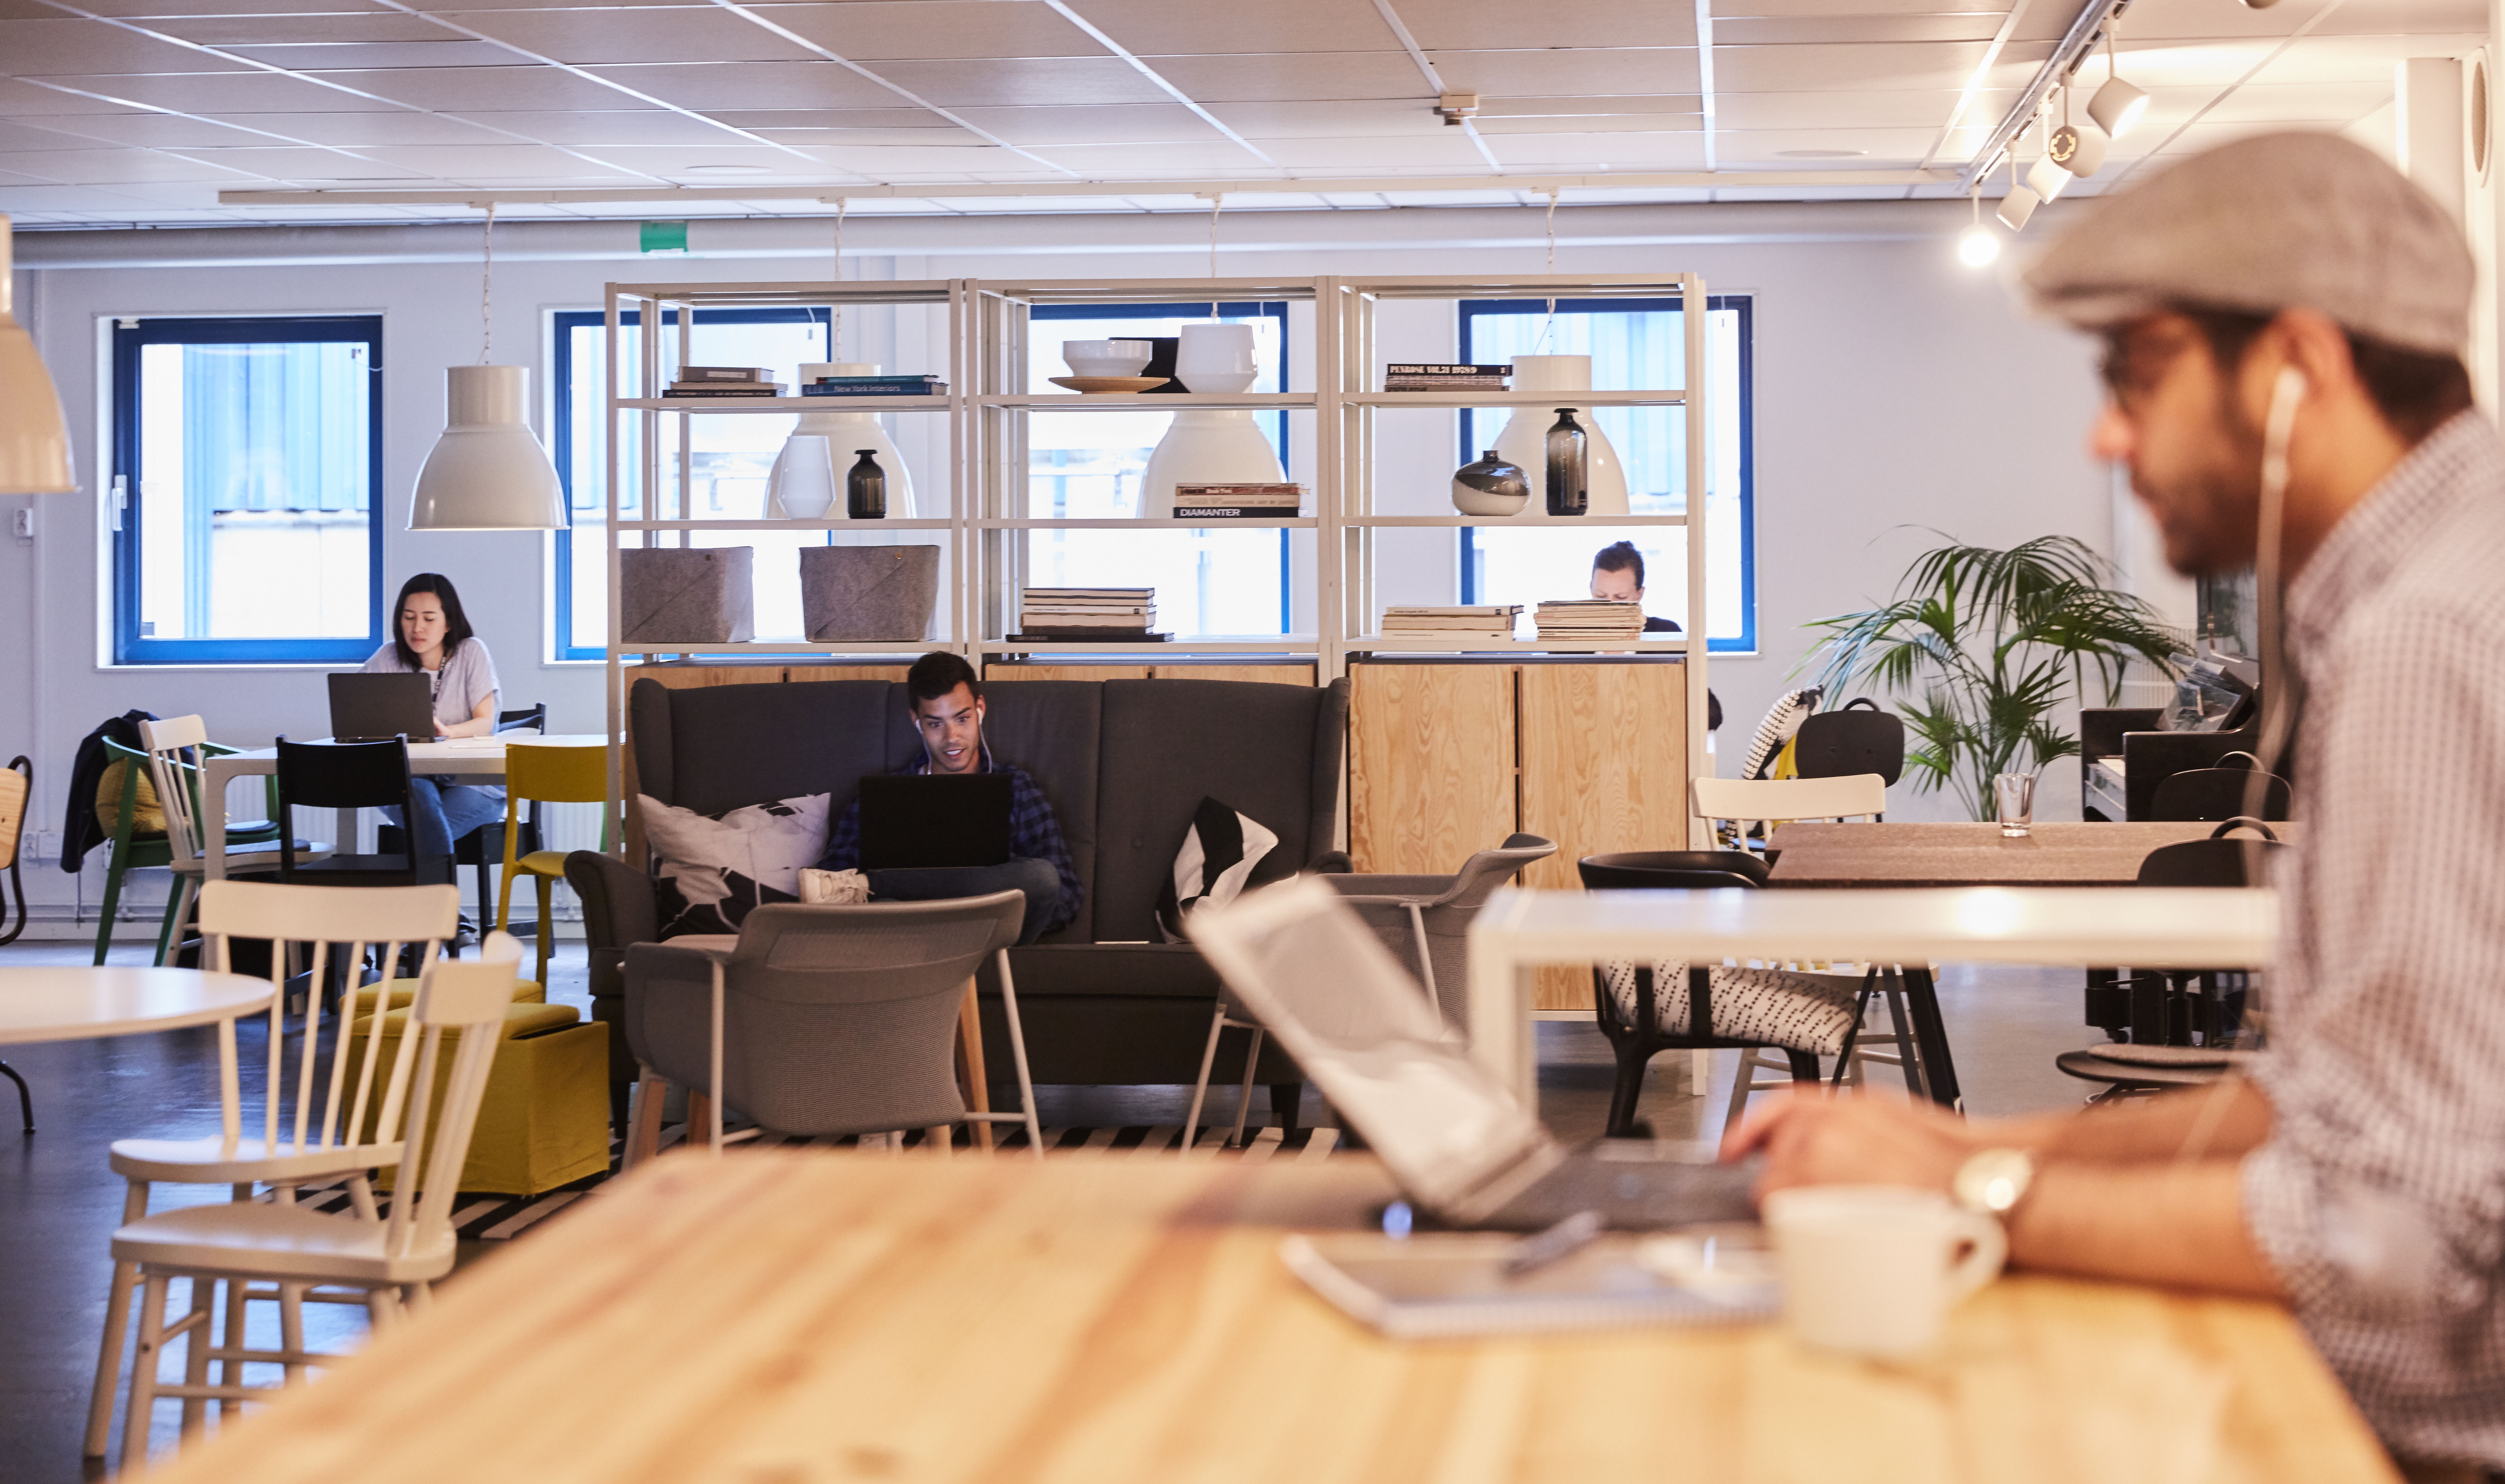 Office Design Space Intended Jill Reedman Country Interior Design Manager Ikea Uk And Ireland Designing The Perfect Work Space For Your Organisation